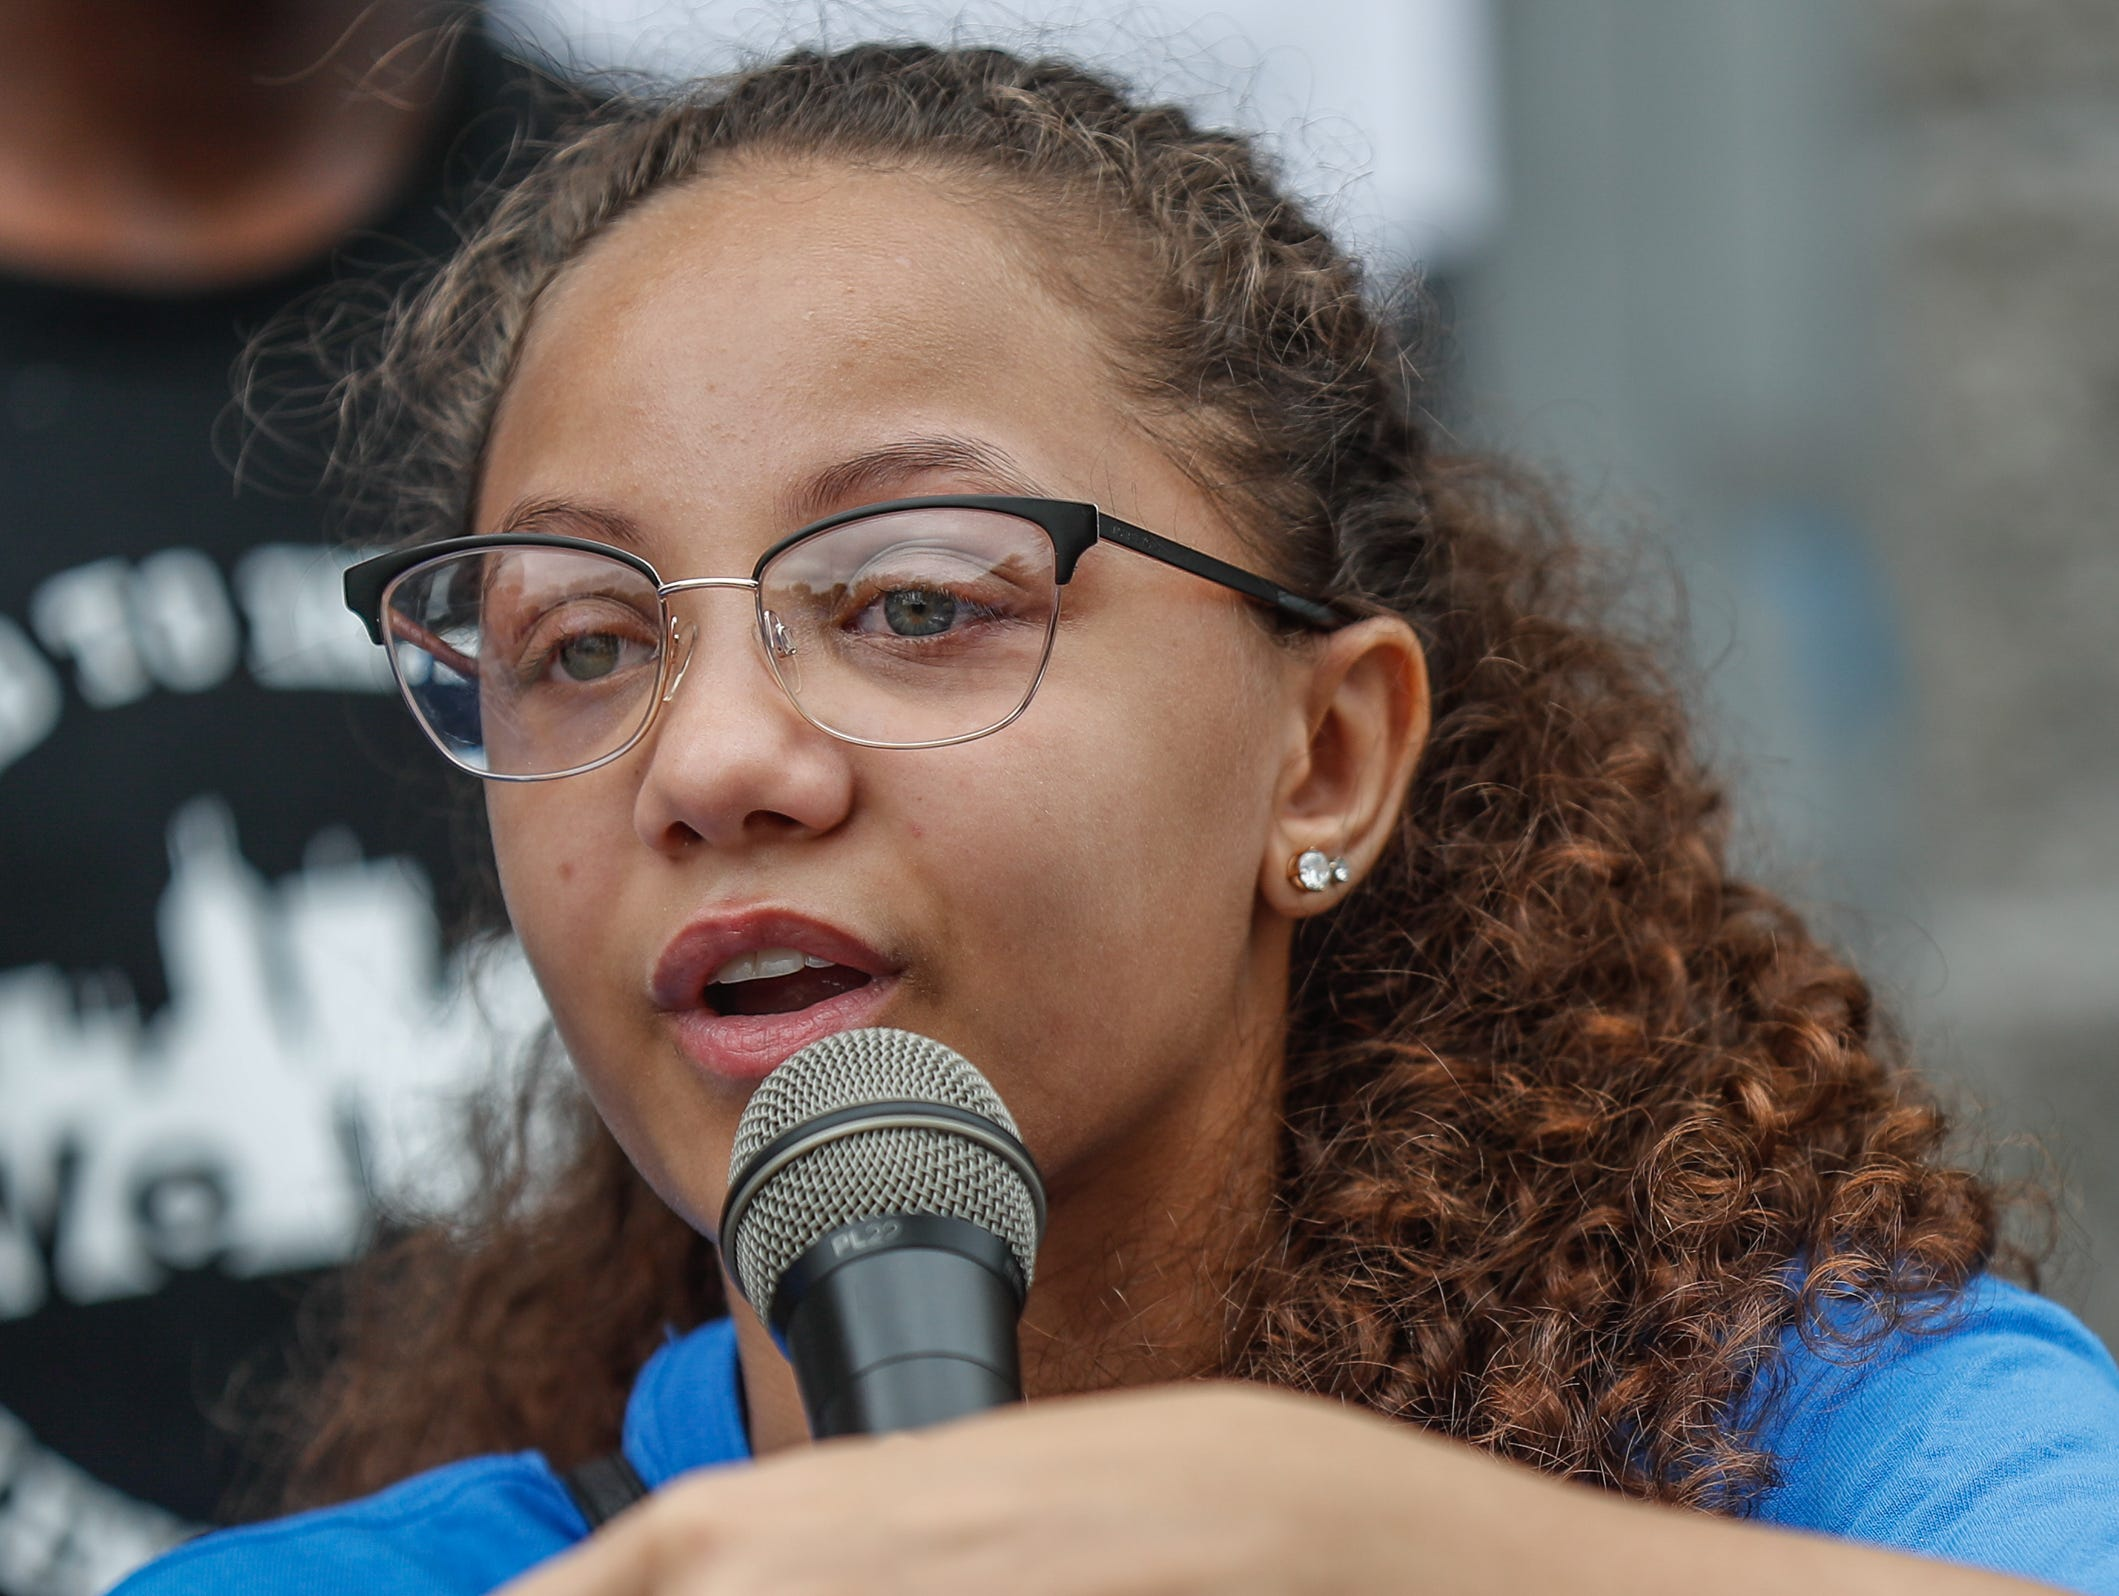 Amaia Cameron, the sister of JeShon Cameron who was killed July 16, 2018, speaks during the second annual 'We Live' Peace Walk and Community Day to end youth violence at Washington Park on Saturday, Aug. 11, 2018. 'We Live,' which stands for 'Linked To Intercept Violence' was started by students from Warren Central High School in Indianapolis.